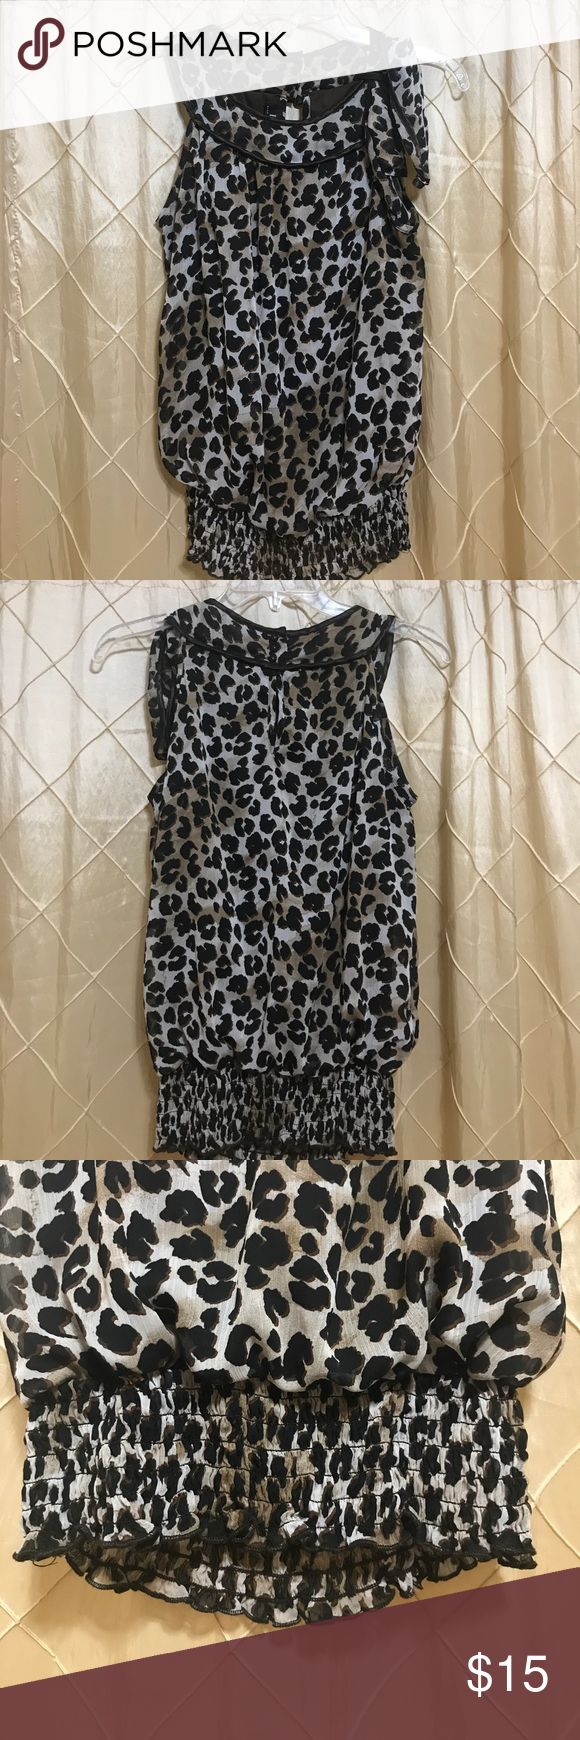 Cheetah dressy shirt A brown cheetah printed shirt. Sleeveless shirt with a bow on the left shoulder. Scrunched from the bottom. B Wear  Tops Blouses